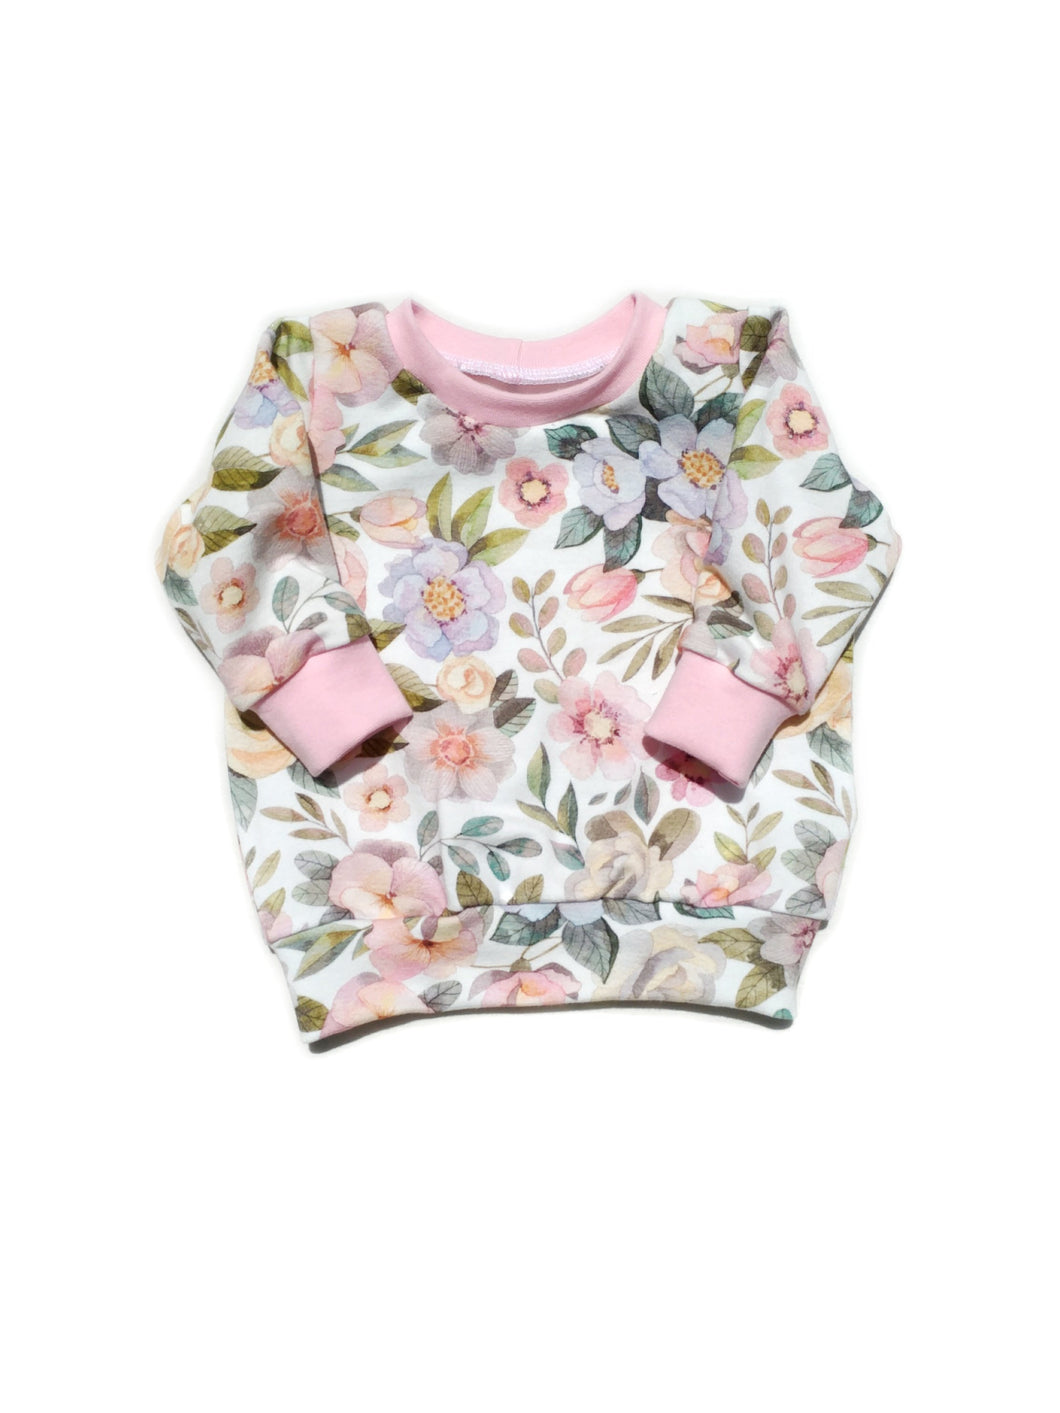 Sweatshirt - Blossoms (Organic French Terry), sizes newborn to 5T/6